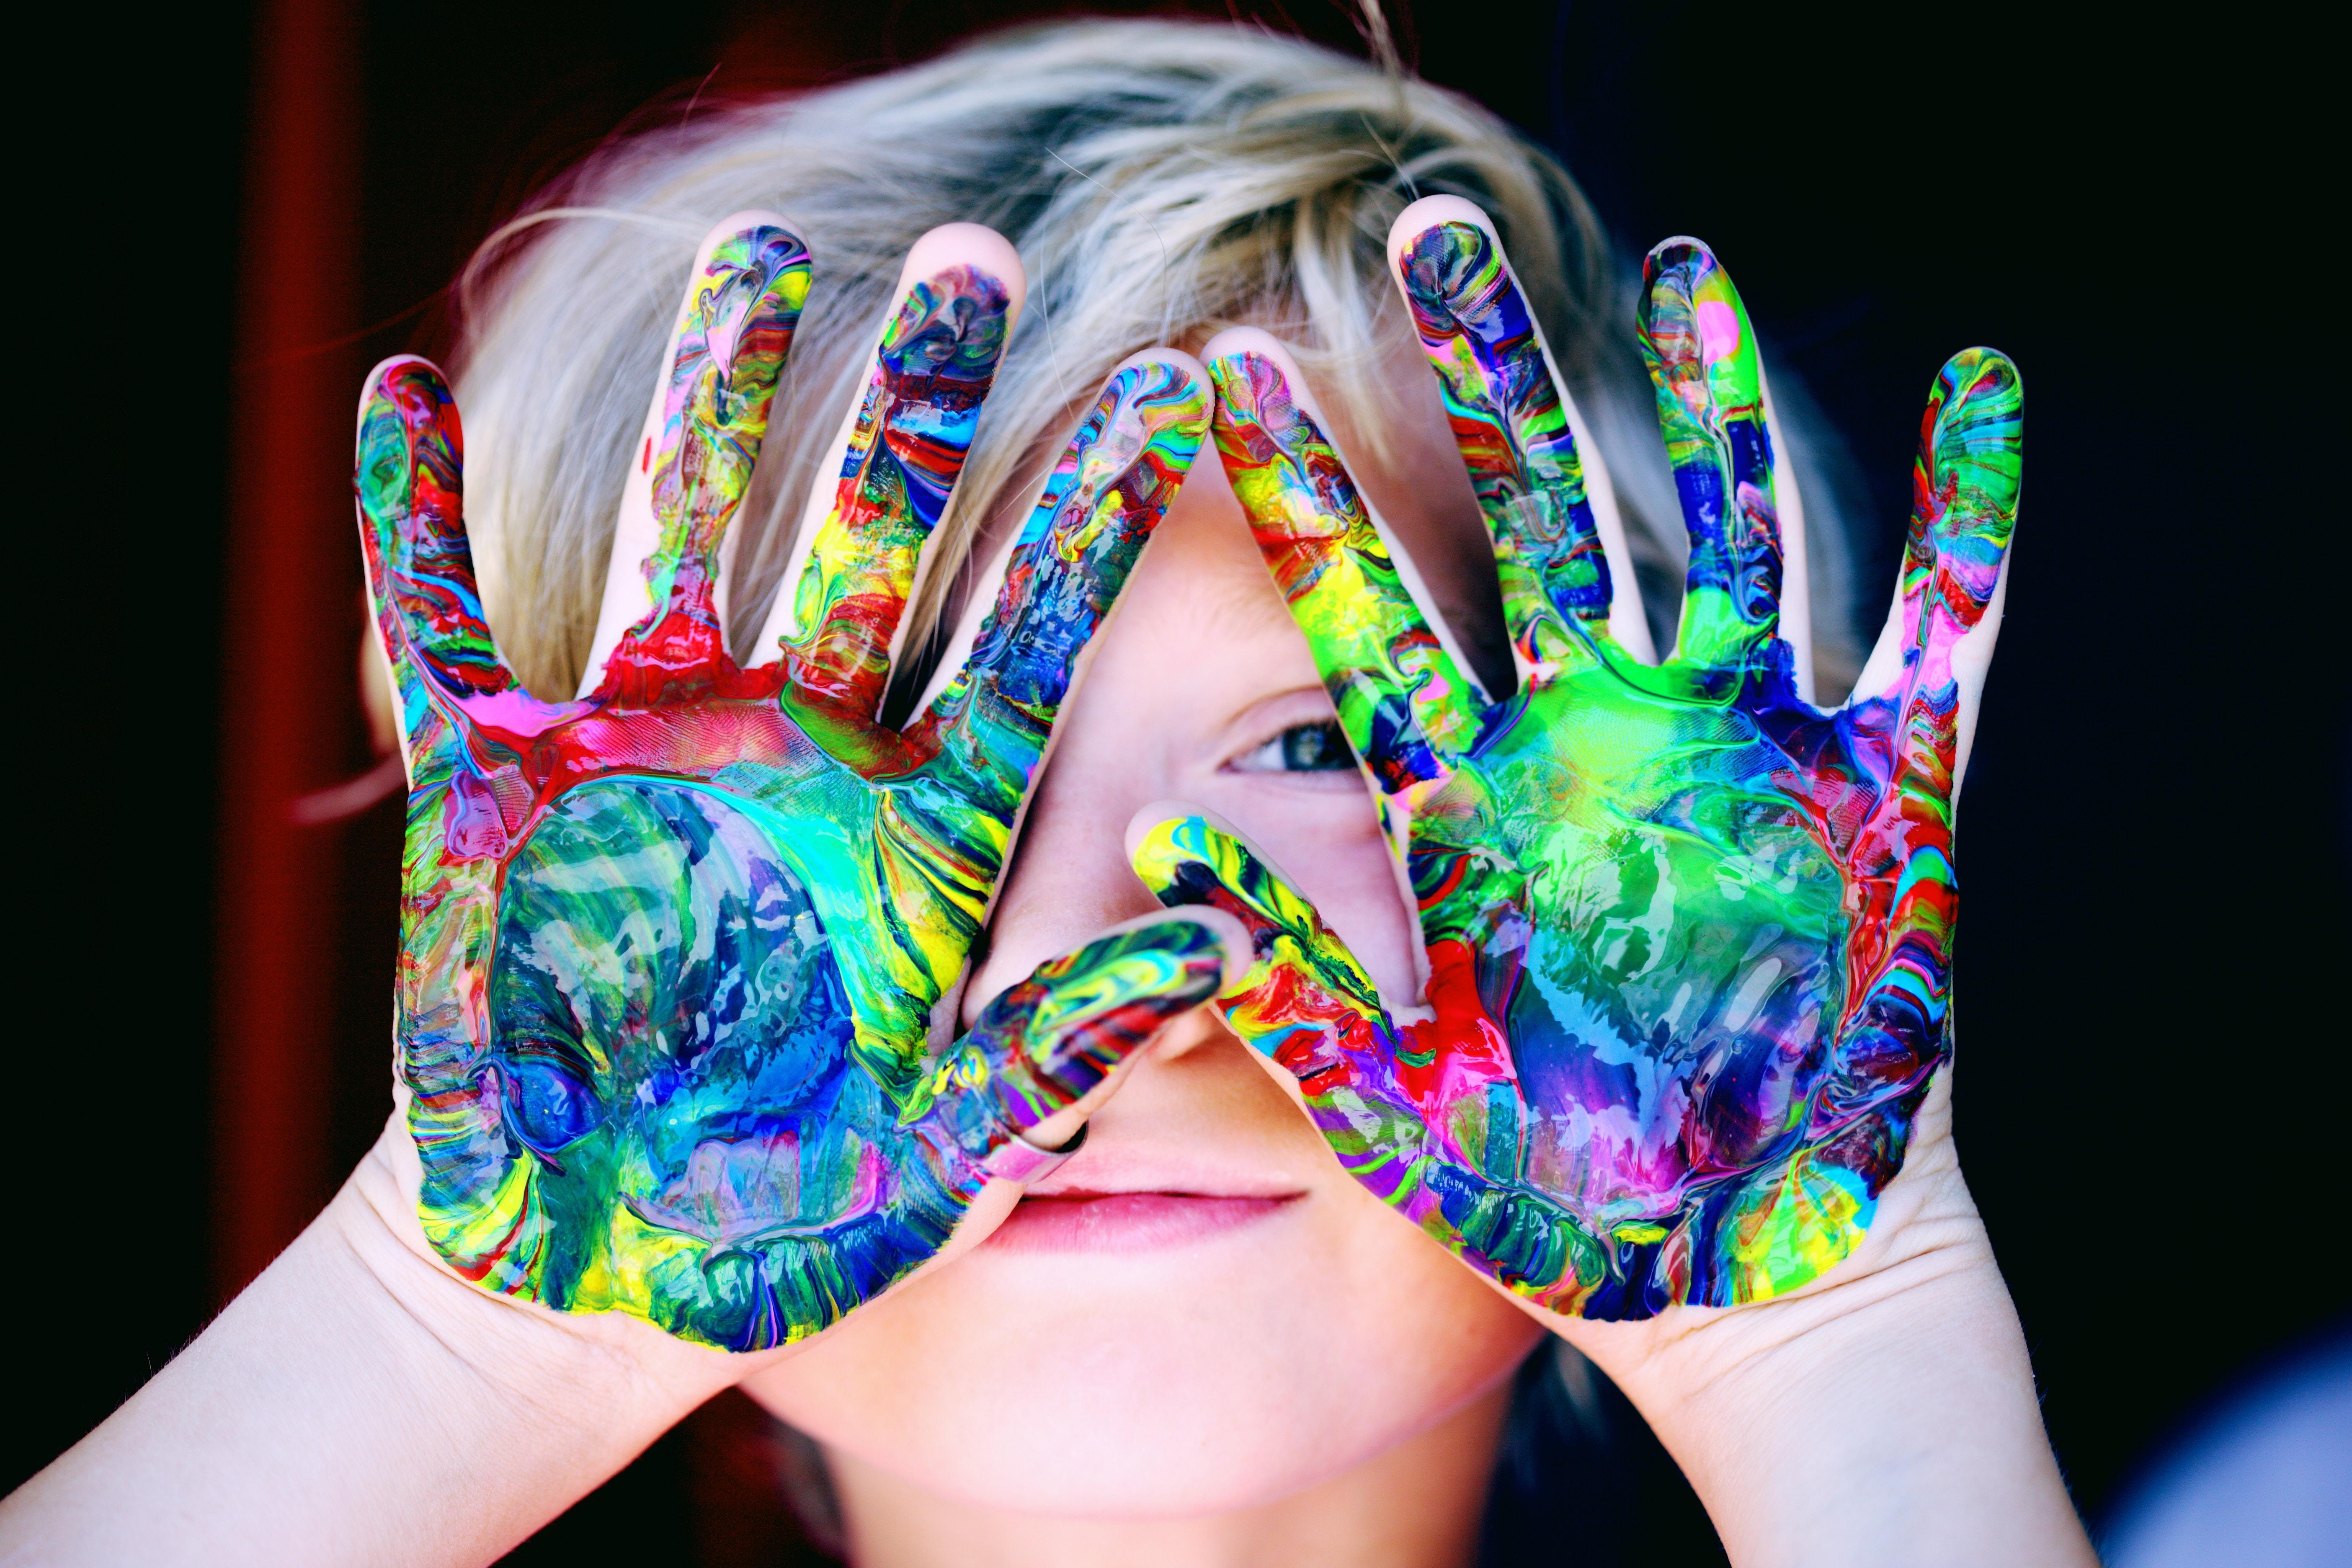 painted childs hands